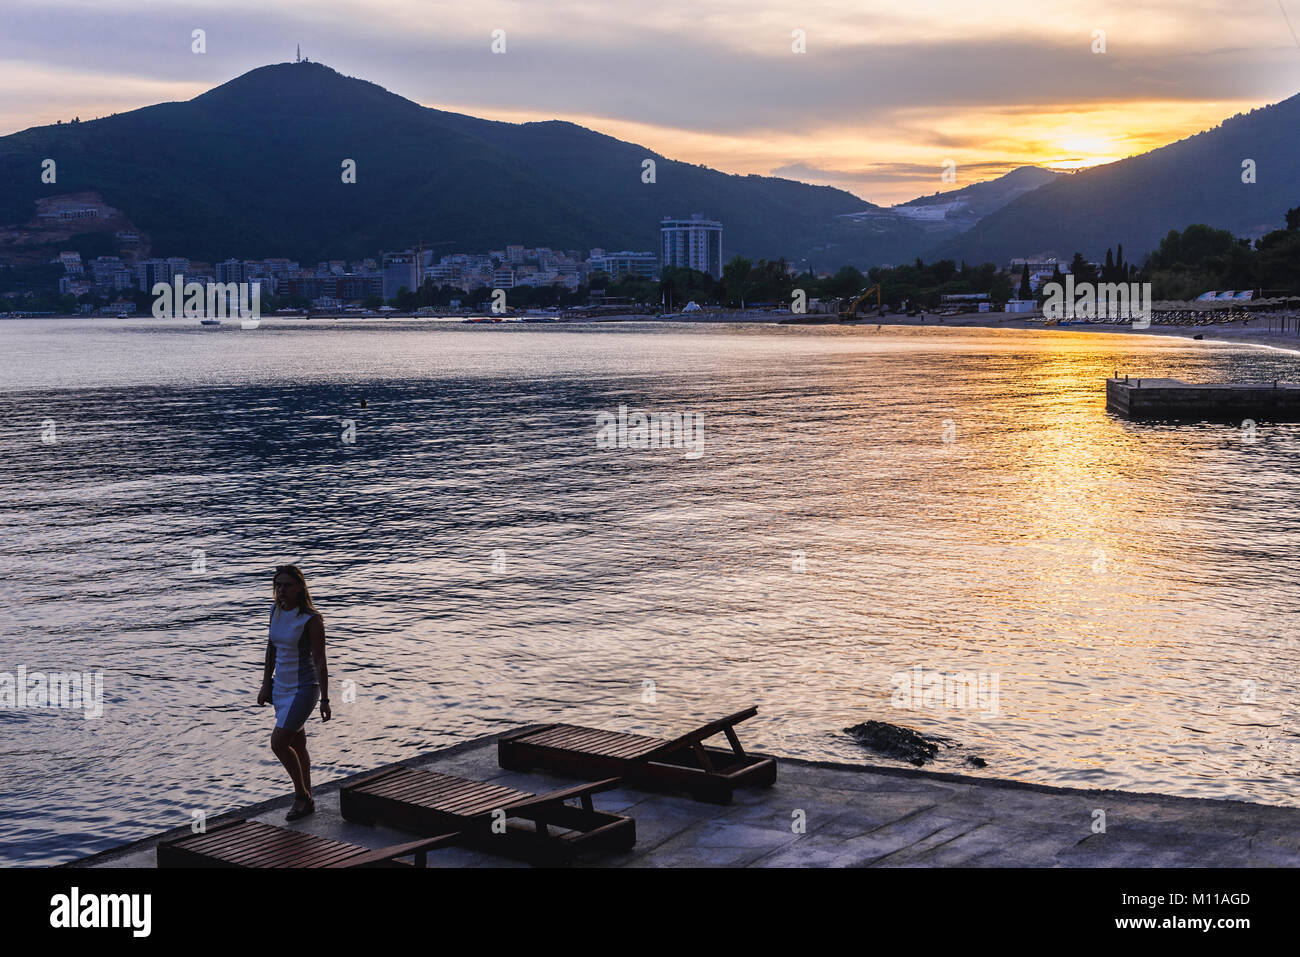 Sunset in Budva city on the Adriatic Sea coast in Montenegro - Stock Image